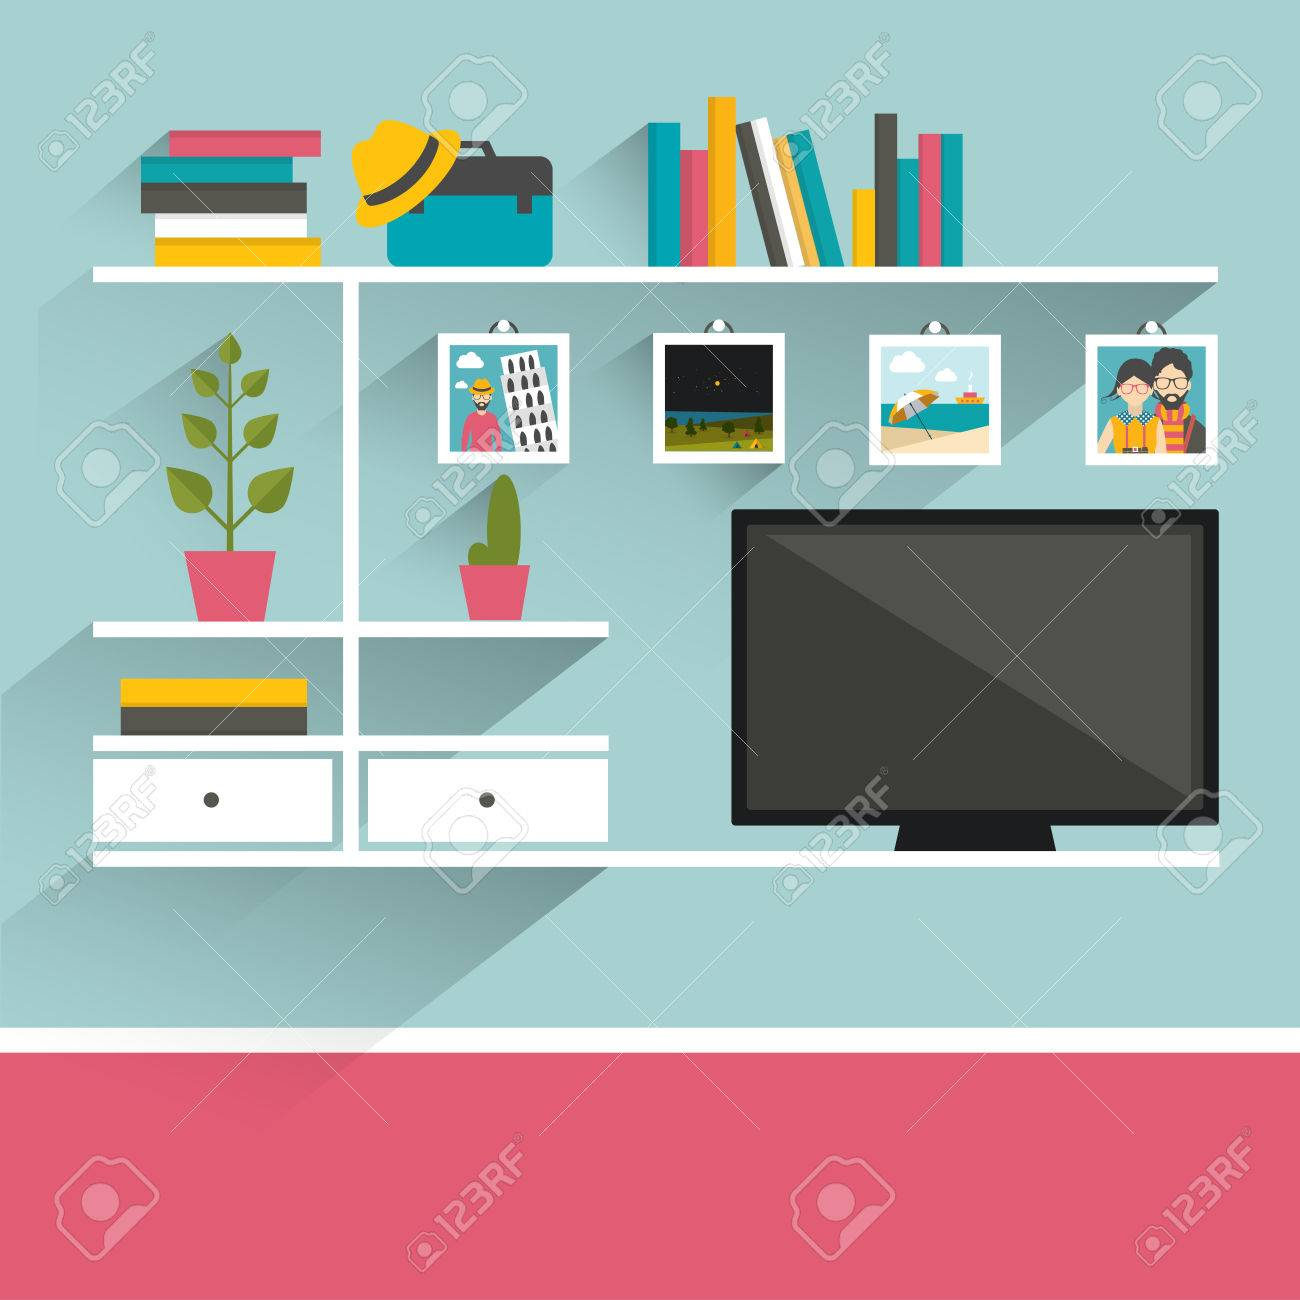 Living Room With Television And Book Shelves Flat Design Vector Illustration Stock